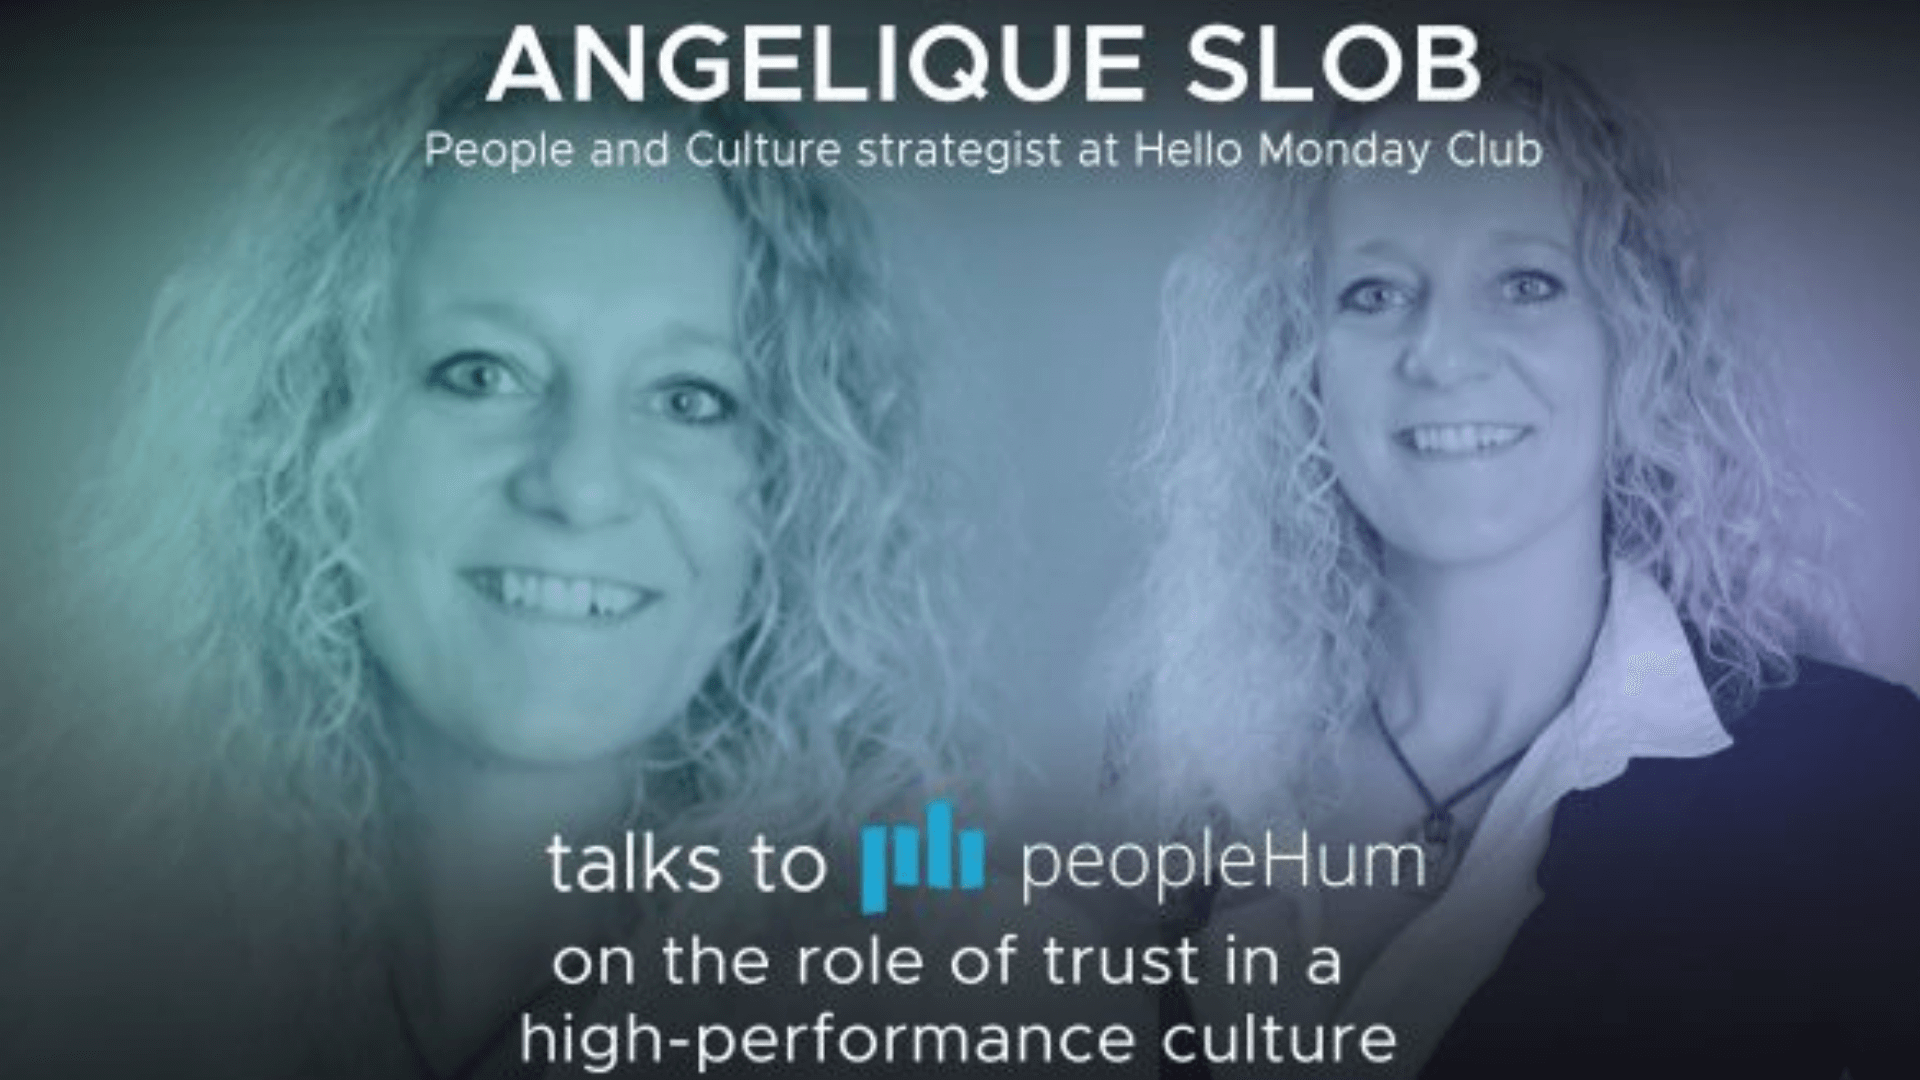 The role of trust in a high-performance culture - Angelique Slob [Interview]